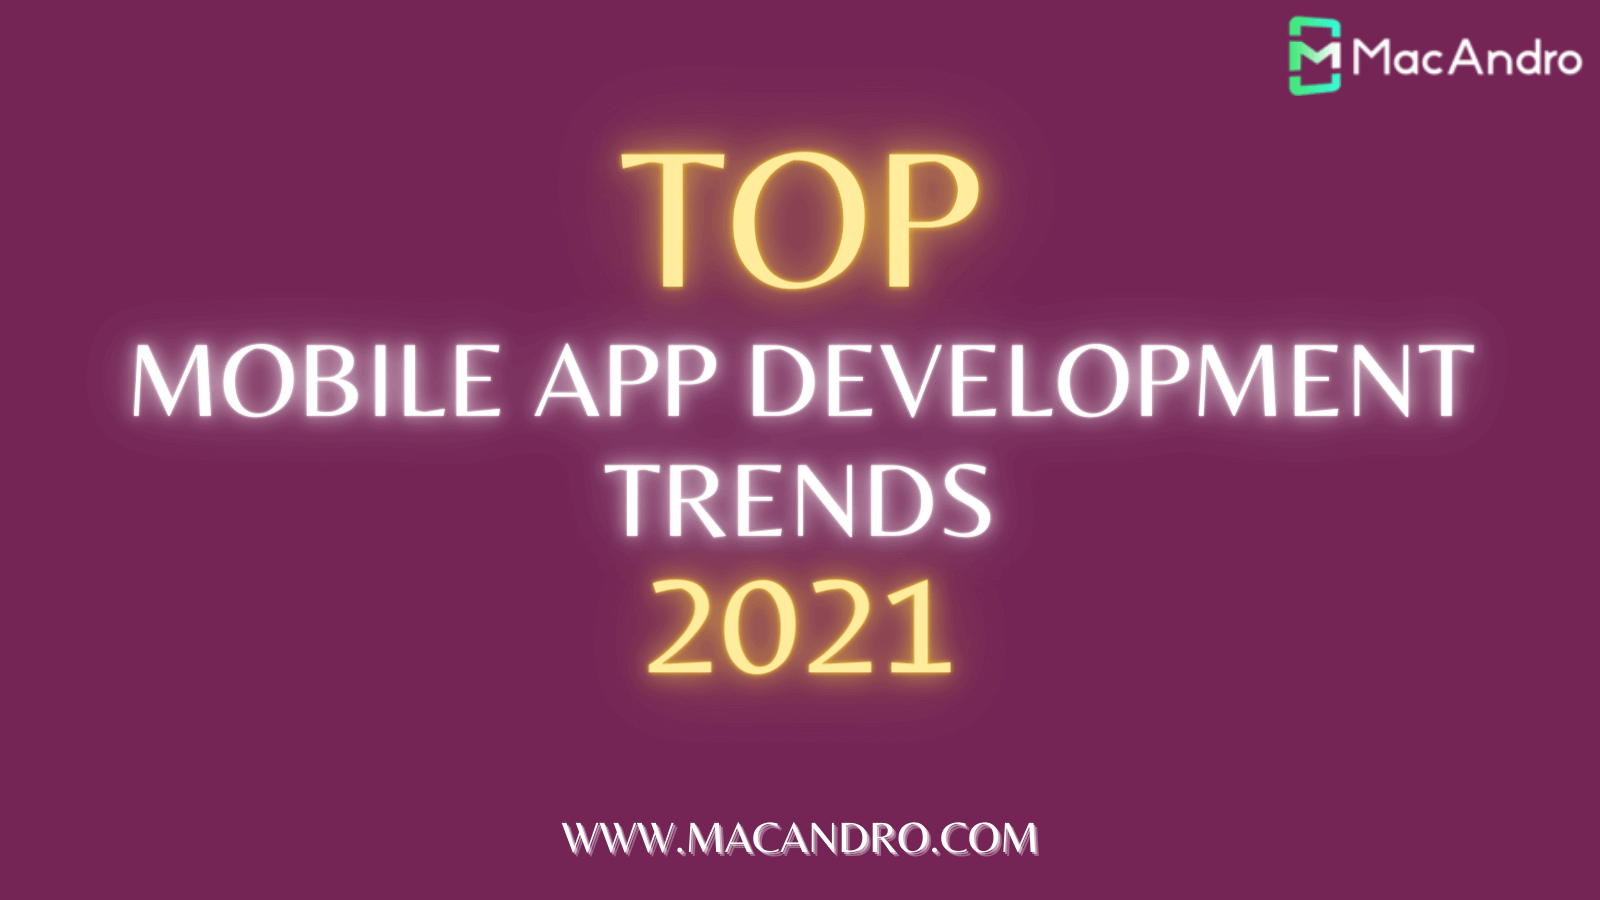 Top Mobile App Development Trends of 2021 that will Influence in Business